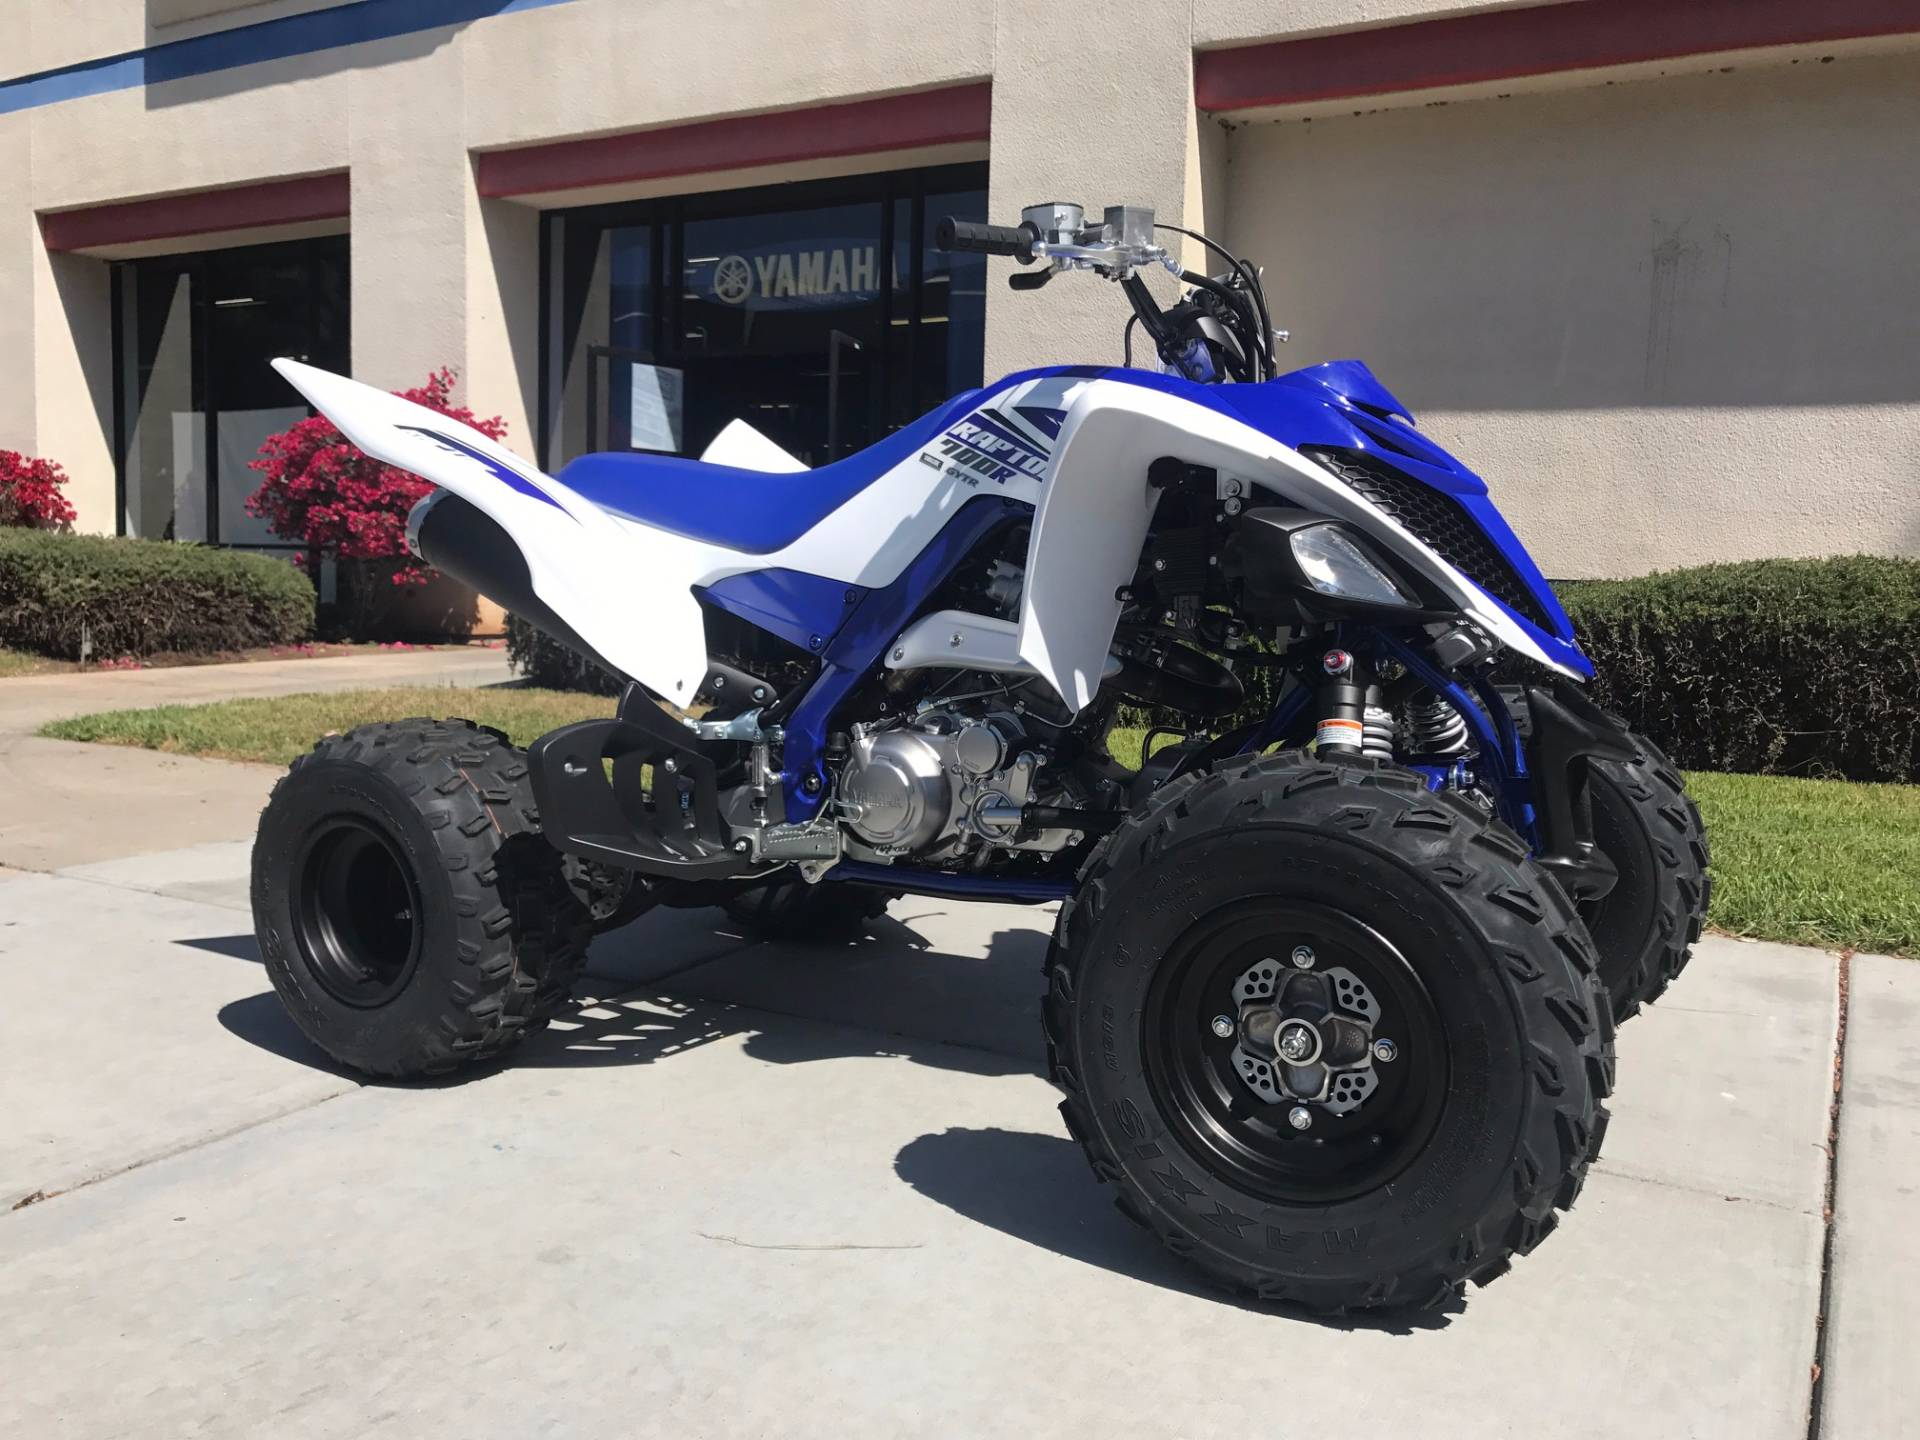 2017 Yamaha Raptor 700r In El Cajon California